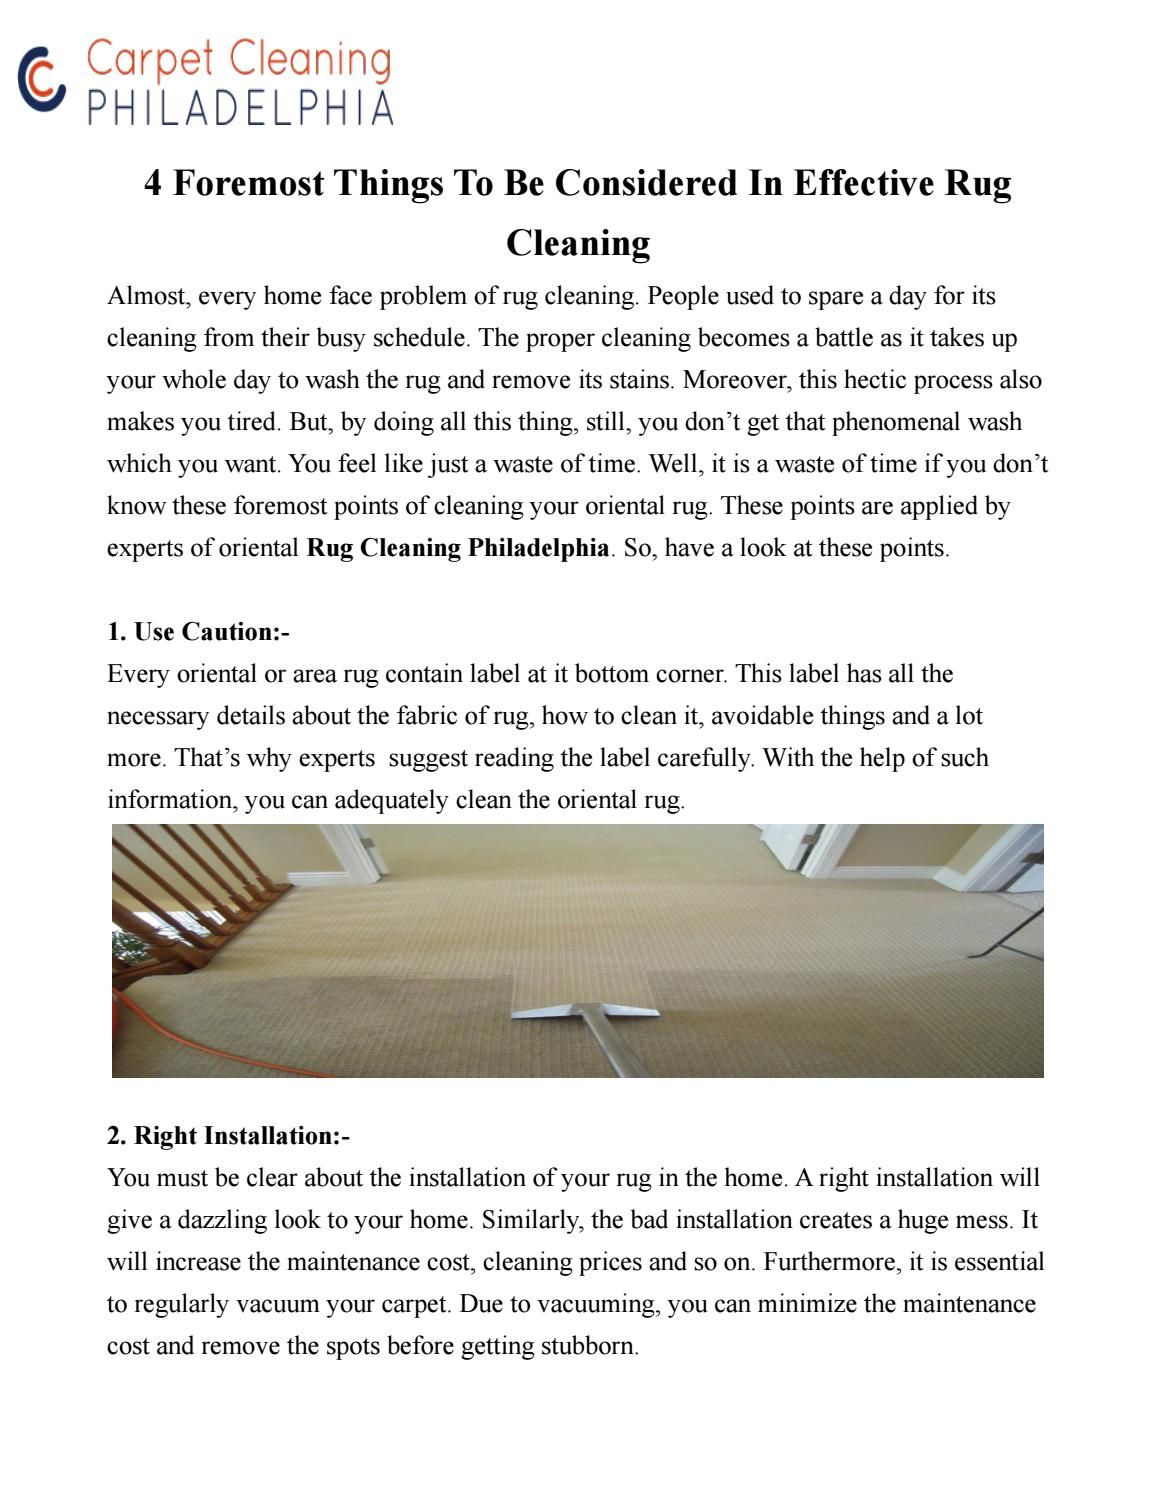 Carpet cleaning tips and tricks everyone needs to know